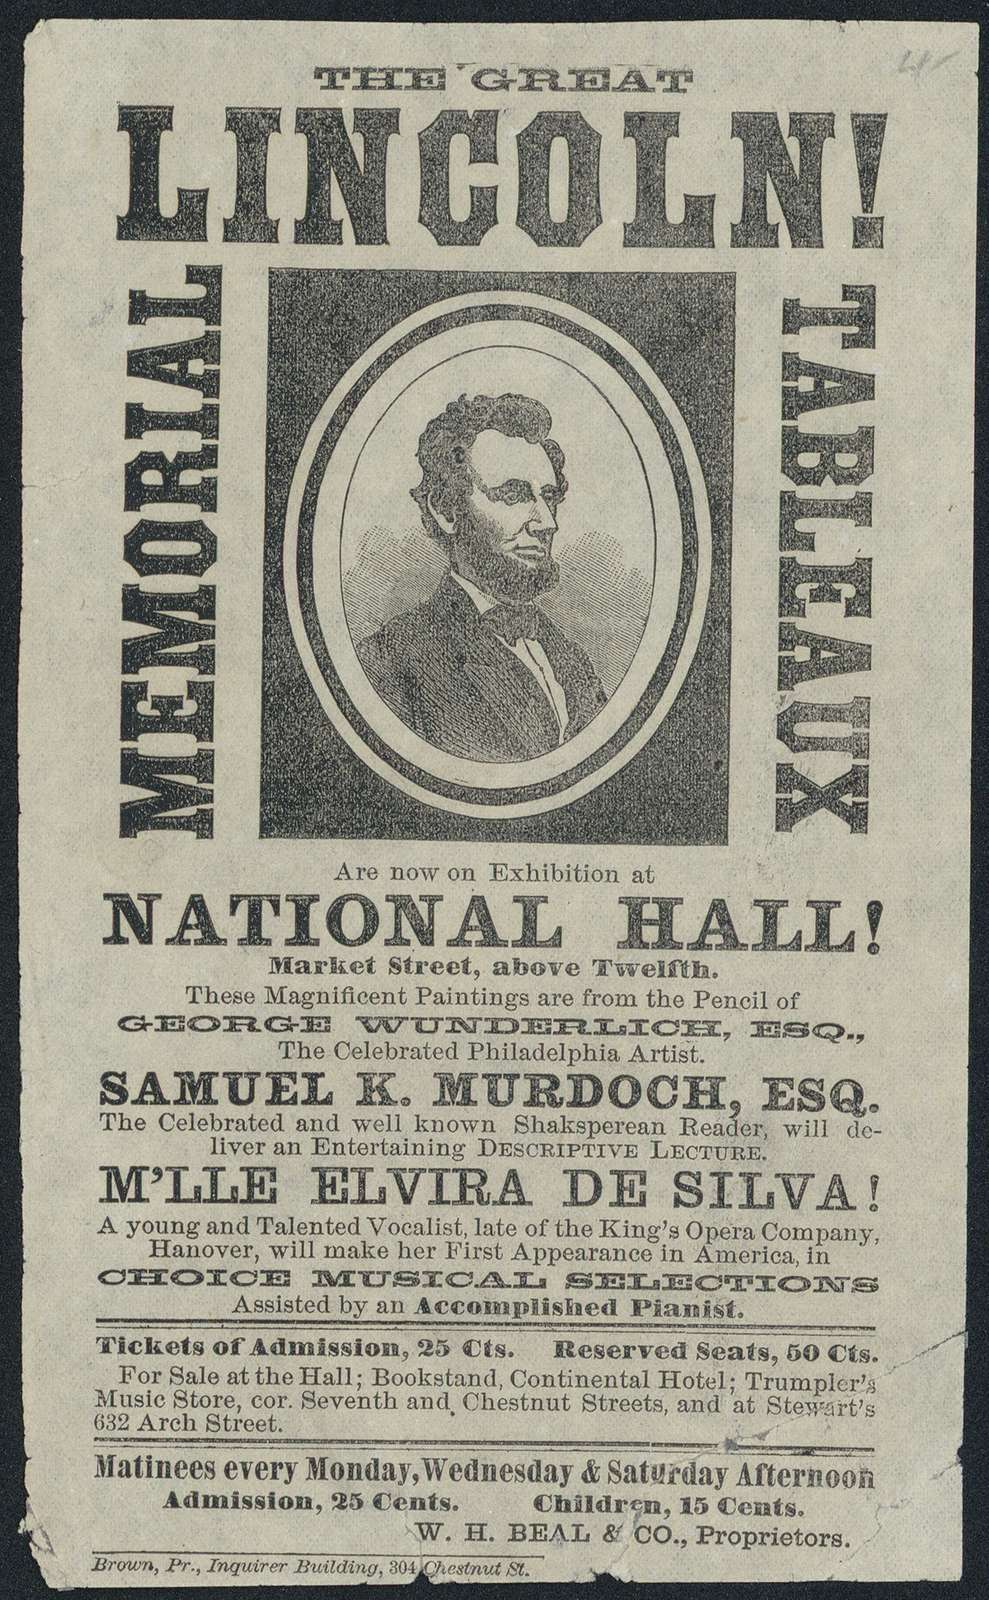 The Great Lincoln memorial tableaux are now on exhibition at National Hall!